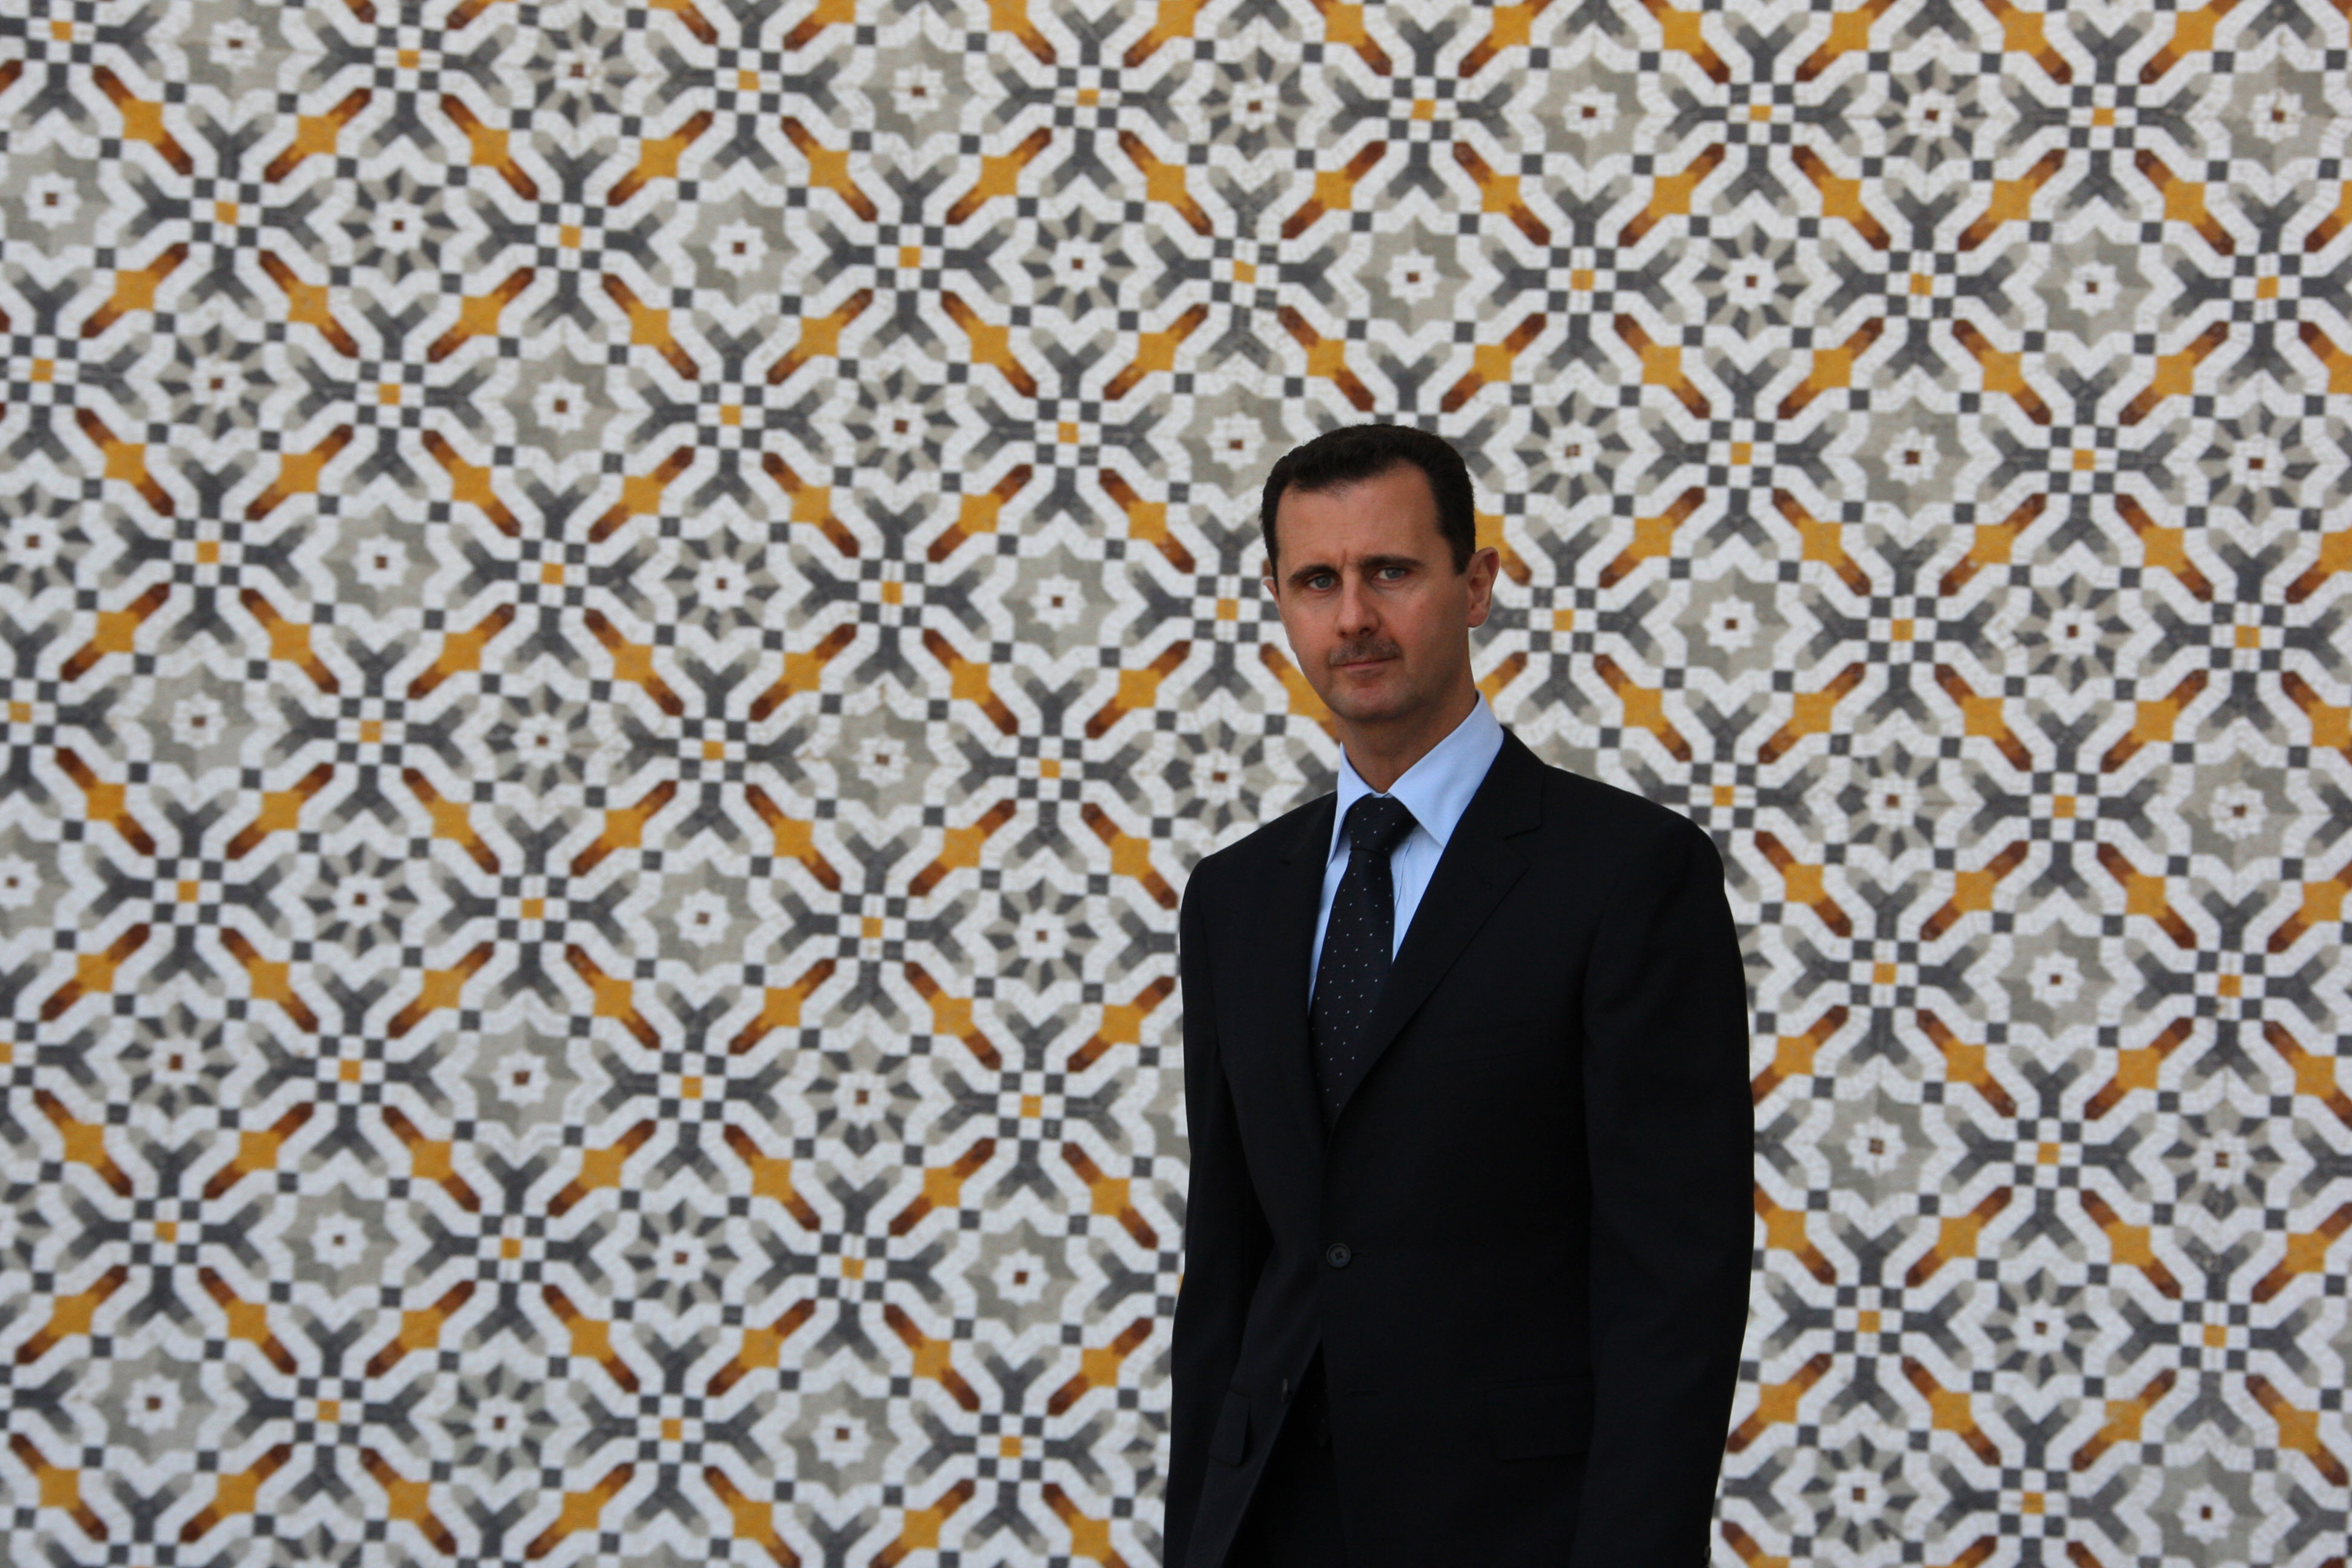 U.S. looking into possible Syrian war crimes